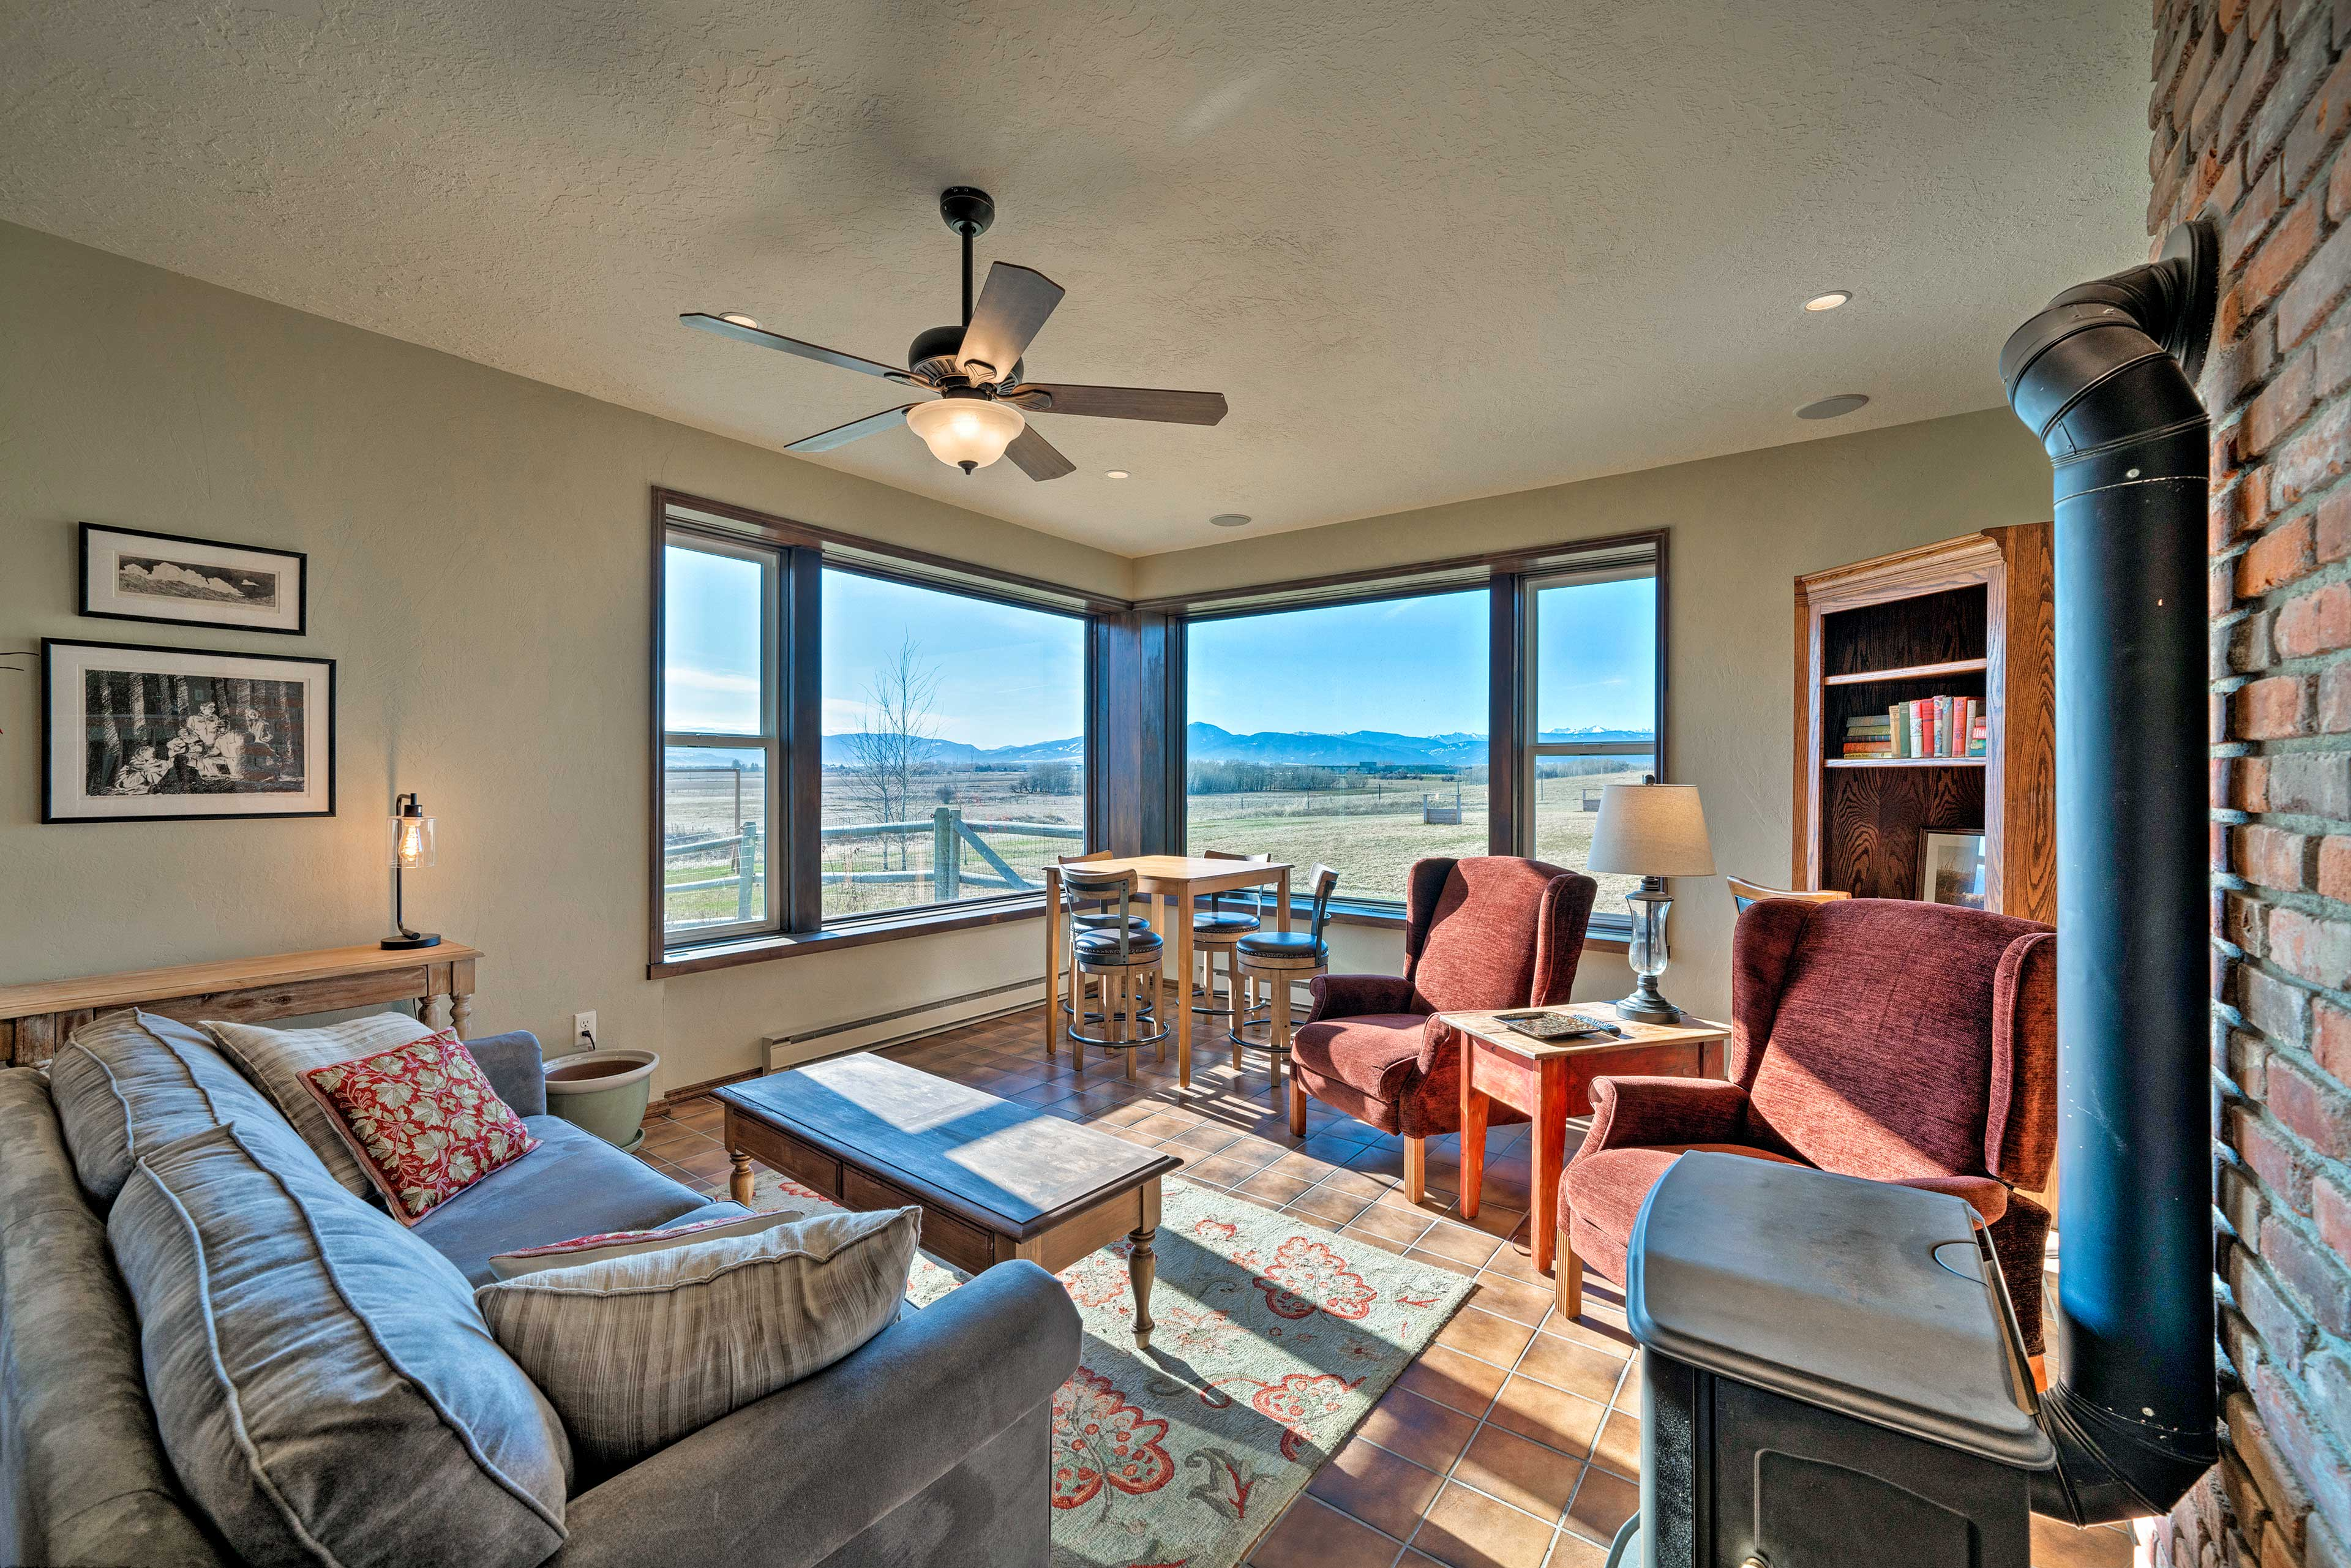 This vacation rental home boasts stunning views from every window!